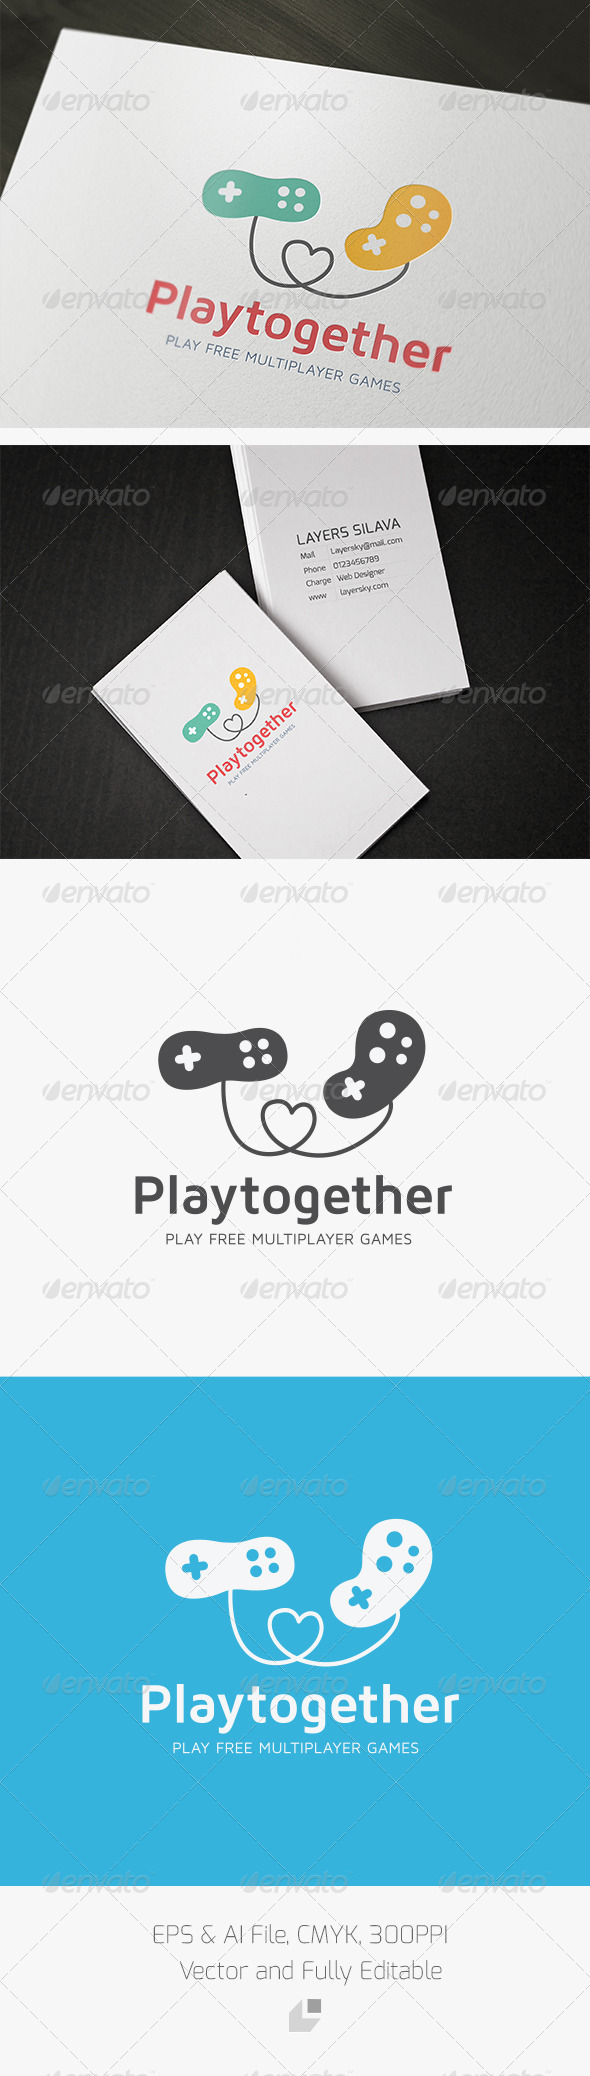 Play together Logo - Objects Logo Templates